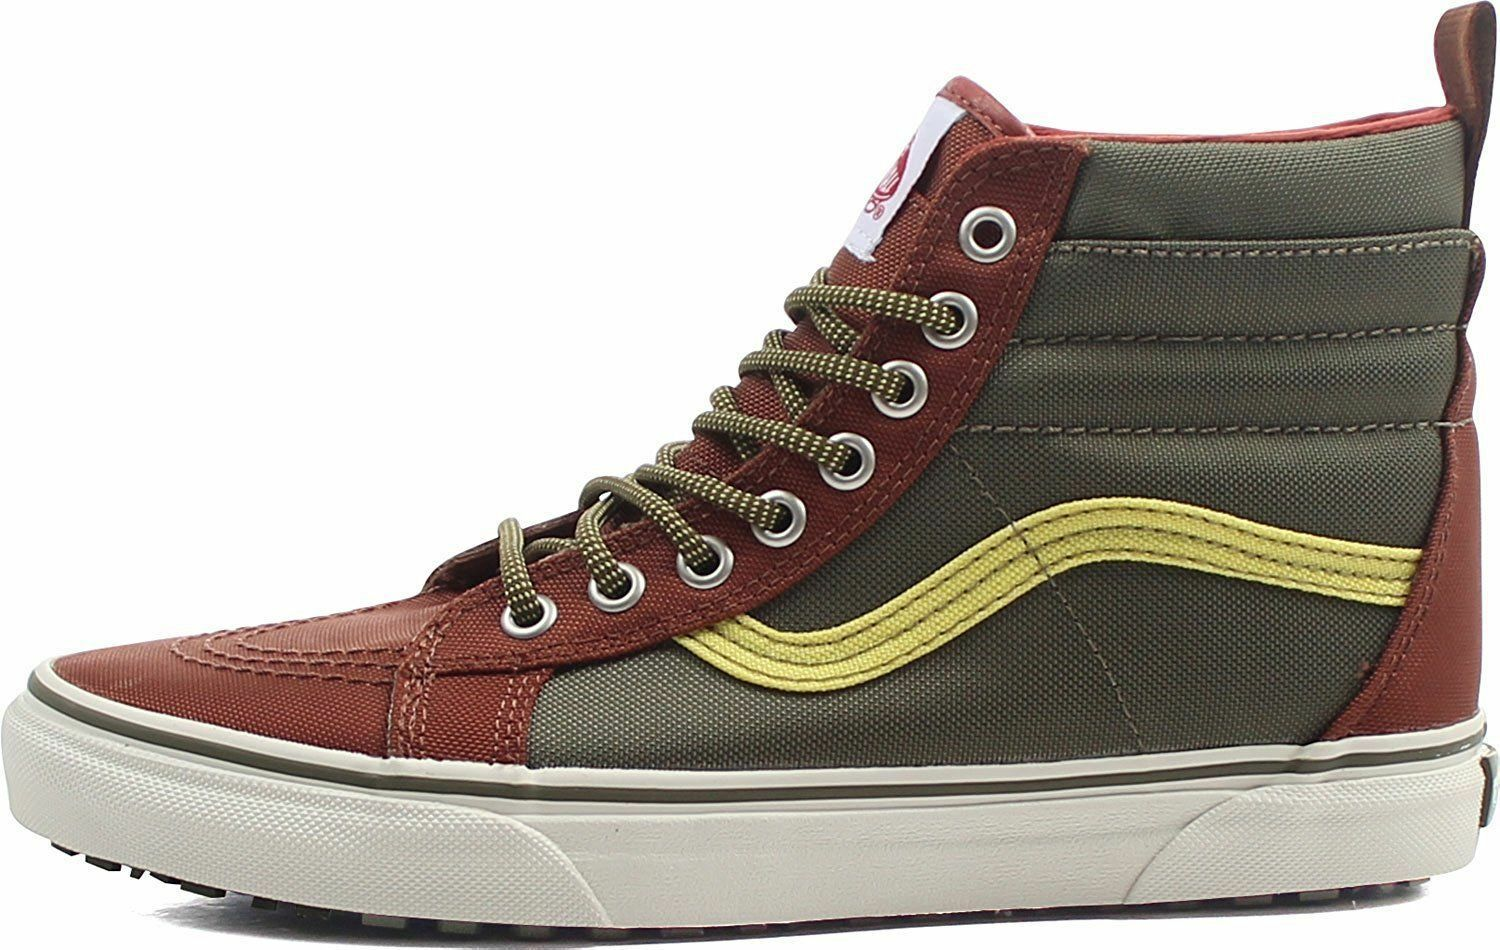 Vans Sk8 Hi MTE DX Green Size 8 NEW   FAST FREE SHIPPING